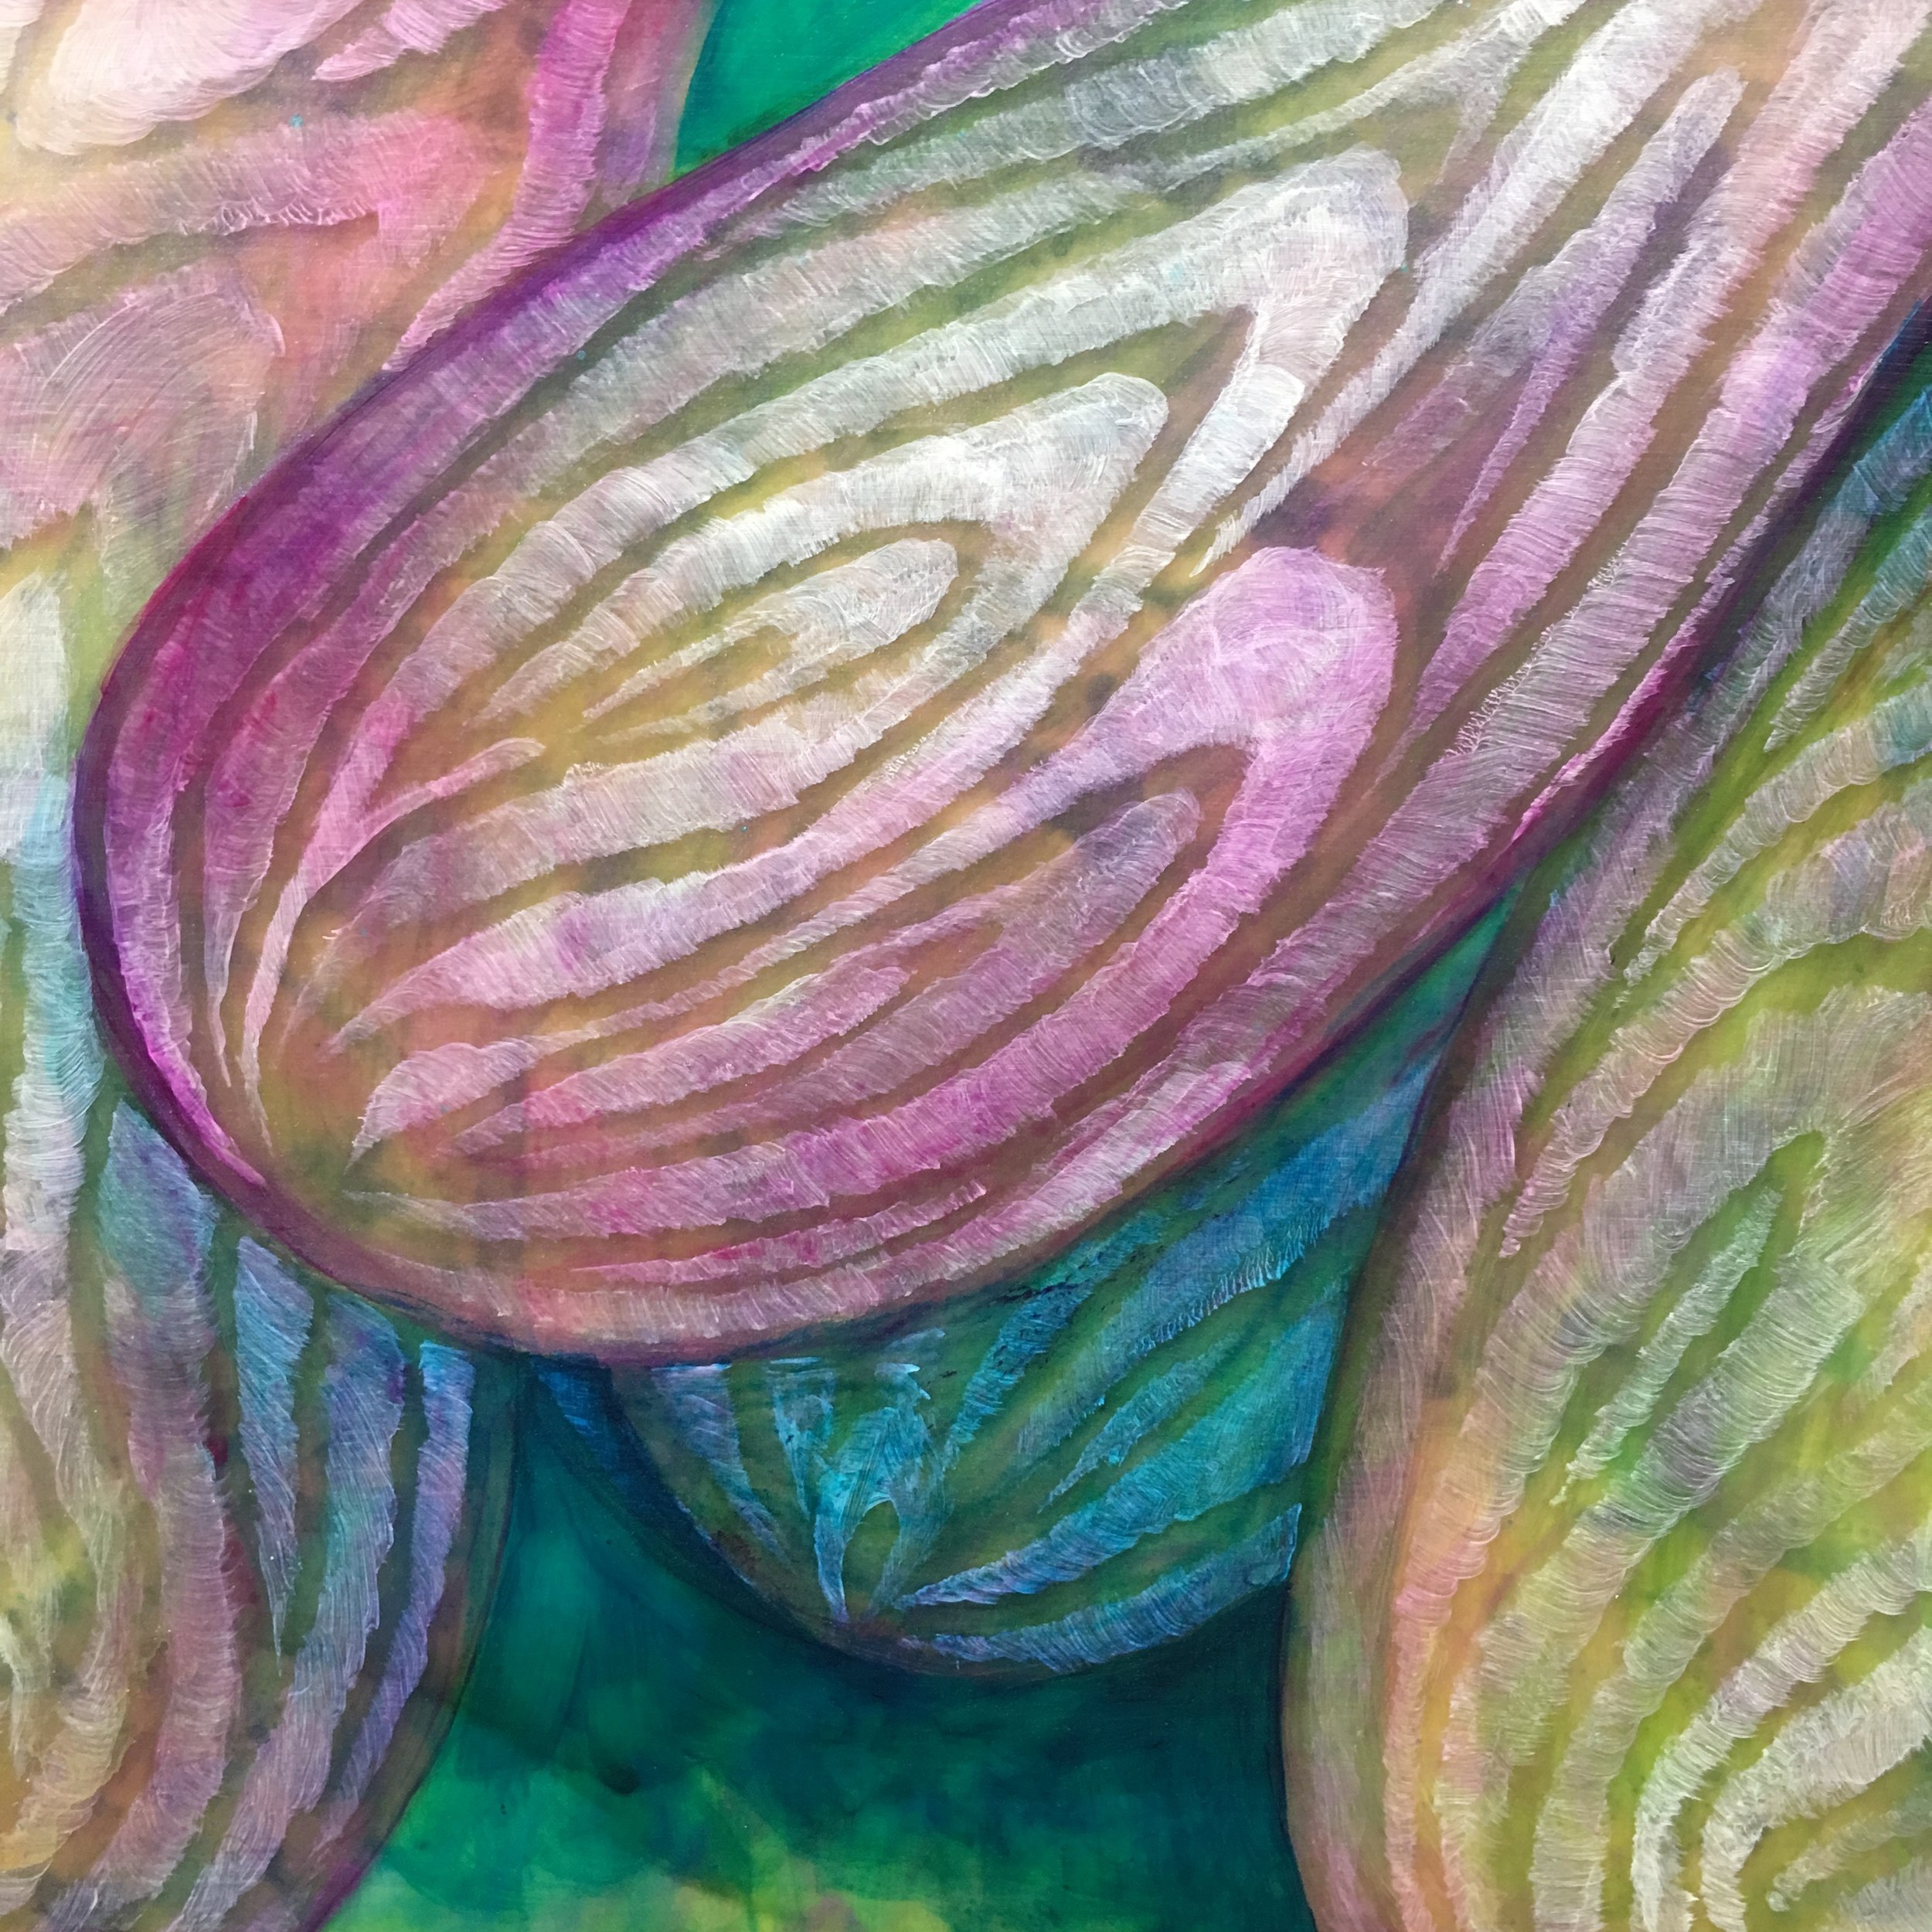 Detail of the onion in process.